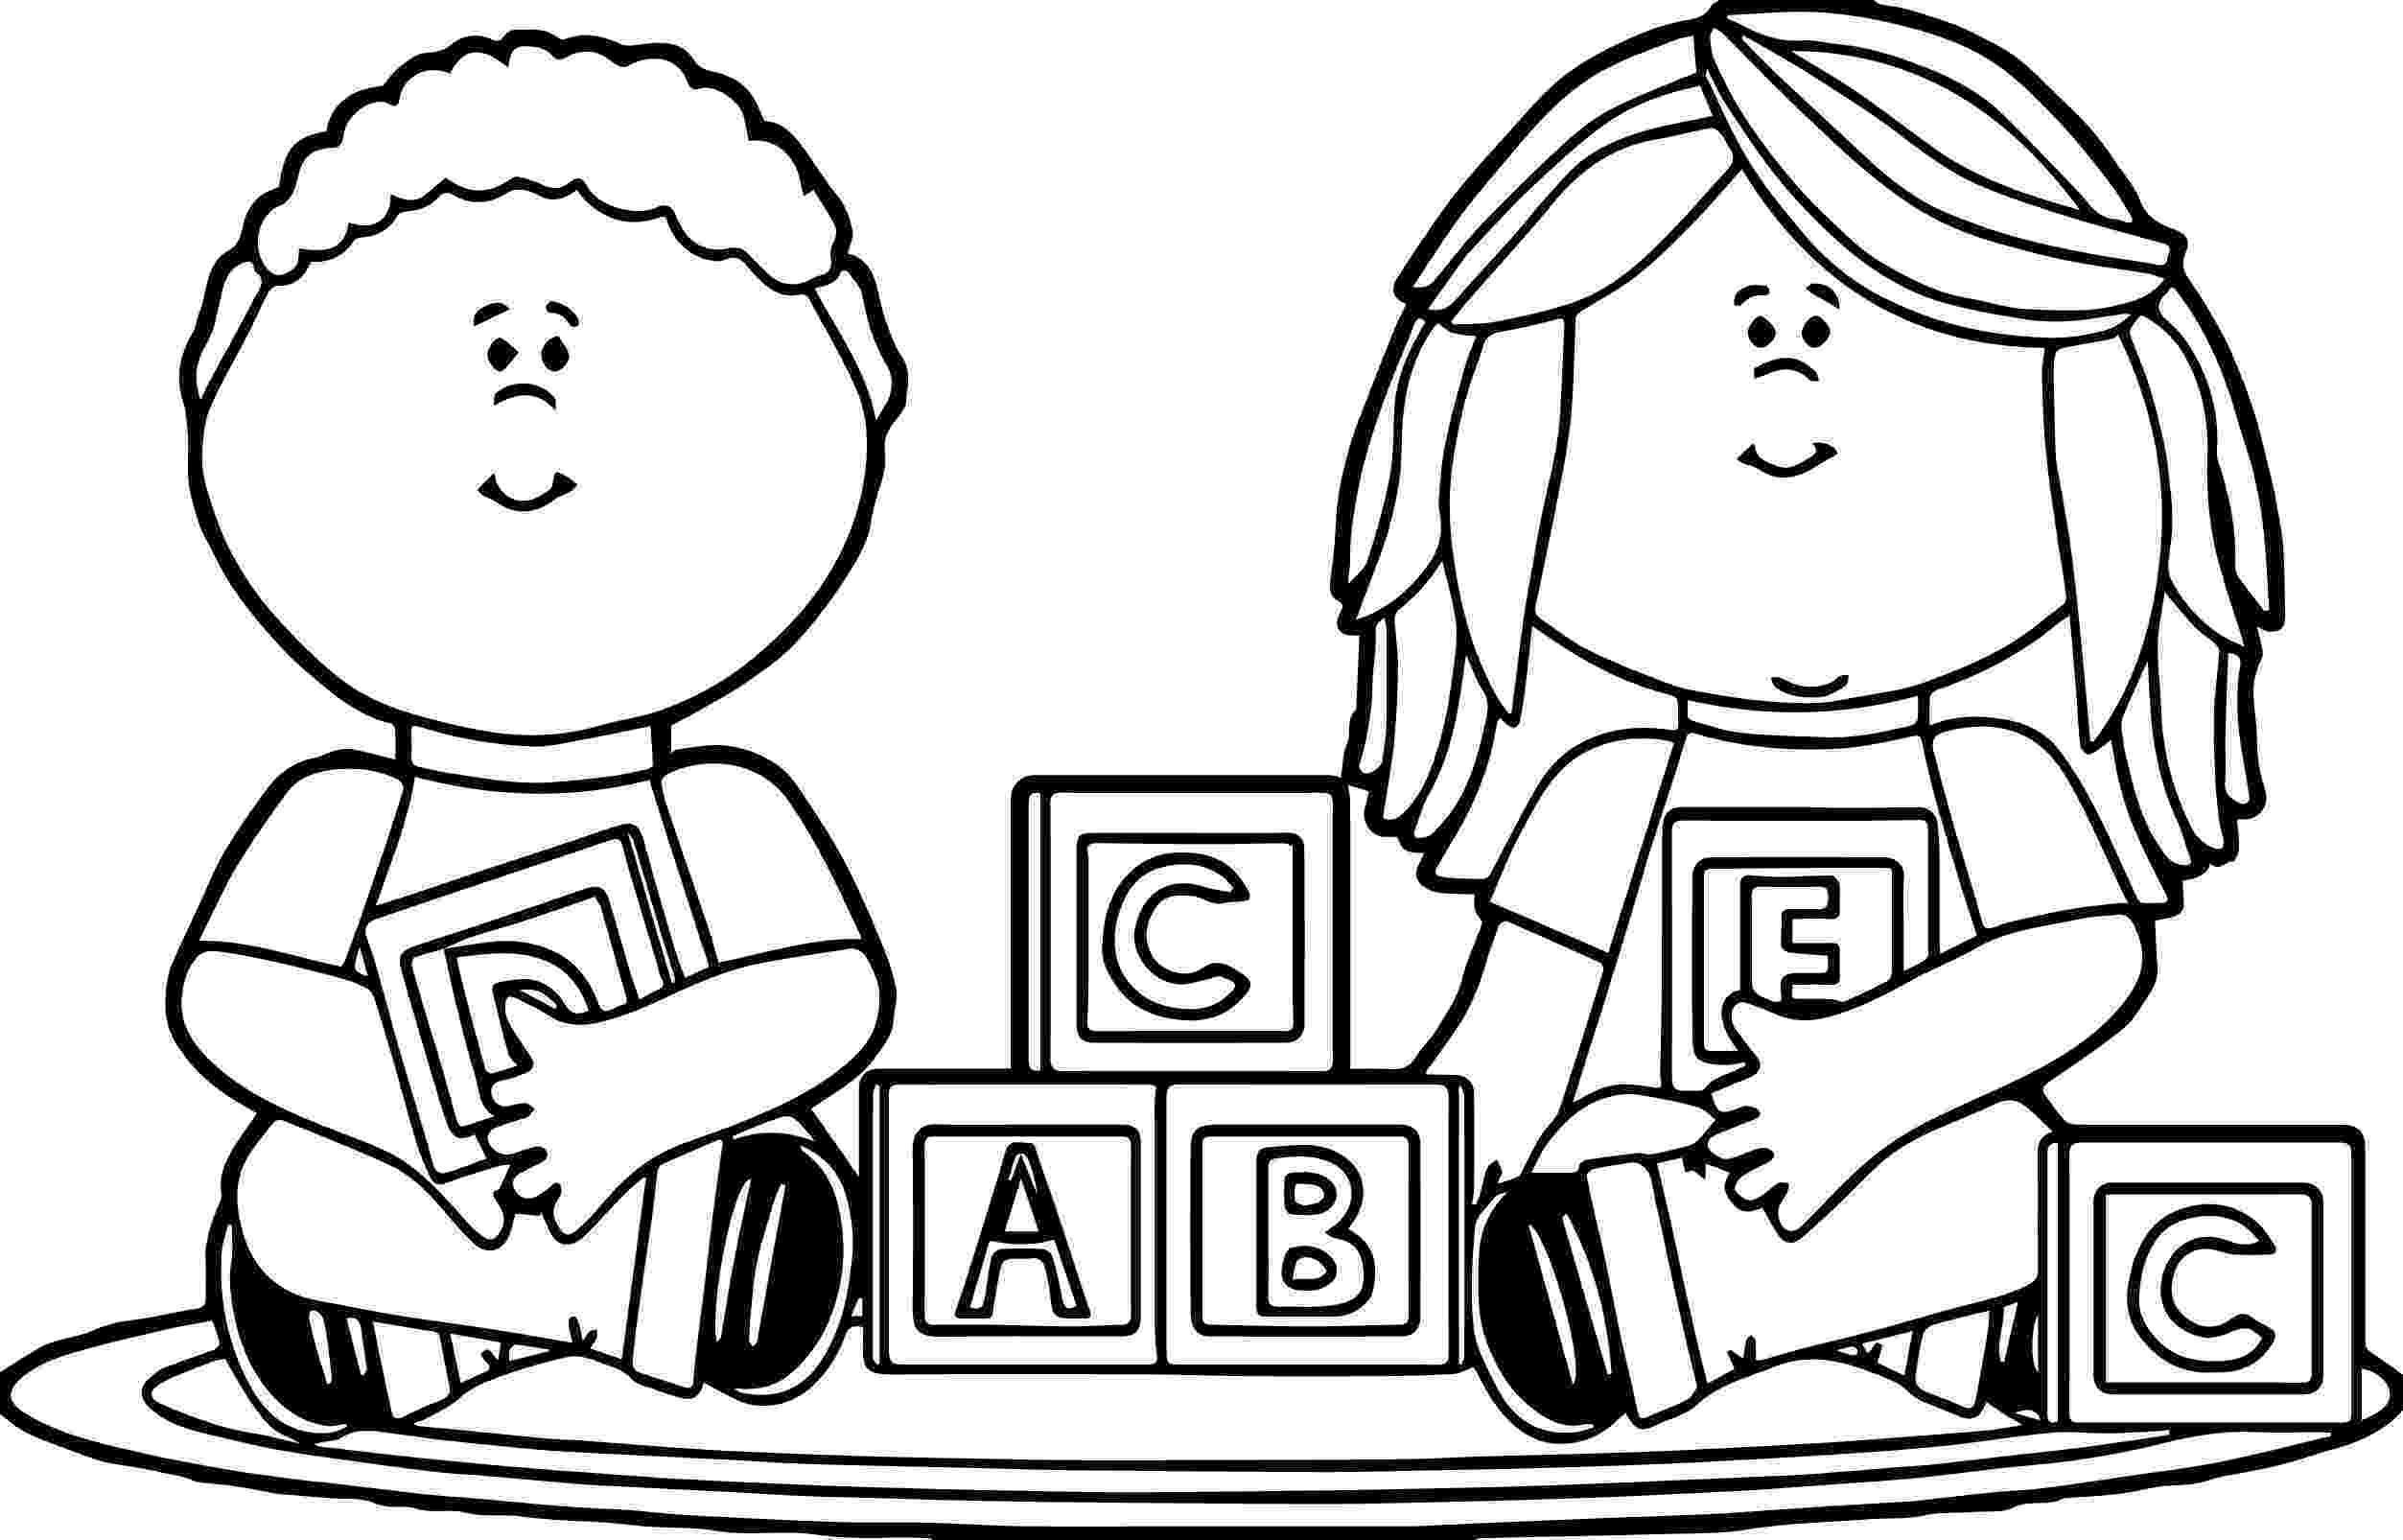 coloring picture games kids playing with blocks kids coloring page picture games coloring